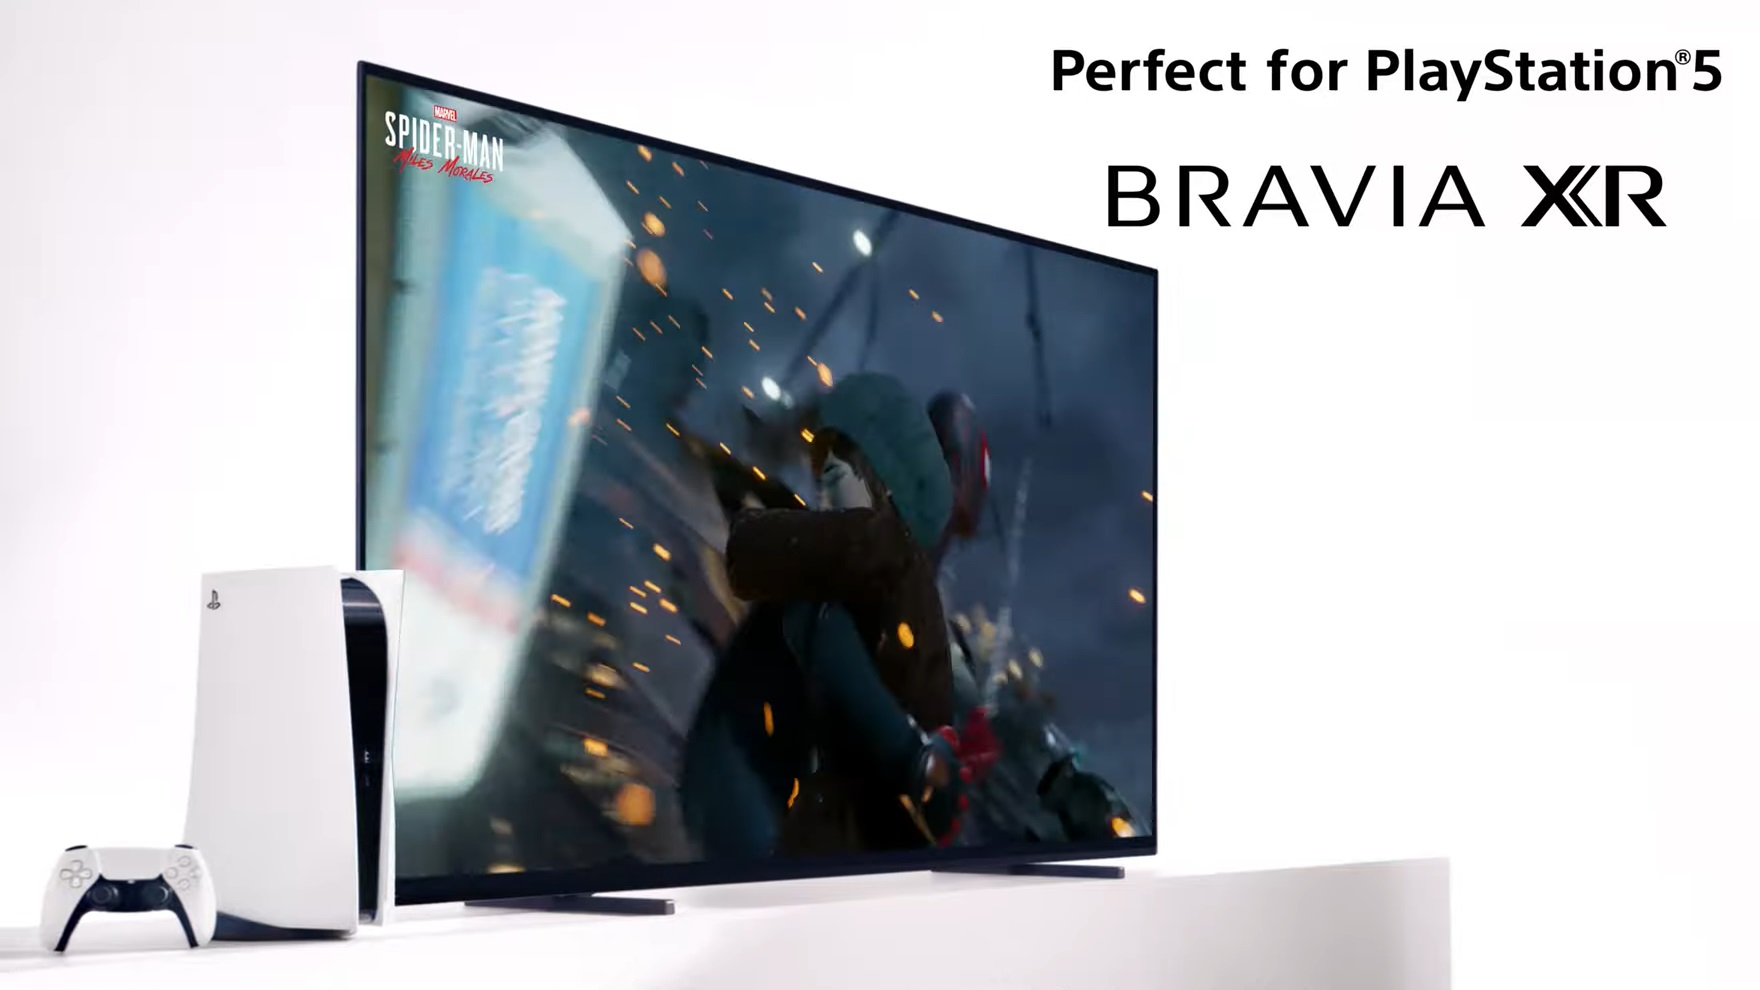 Perfect for PlayStation 5 BRAVIA XR